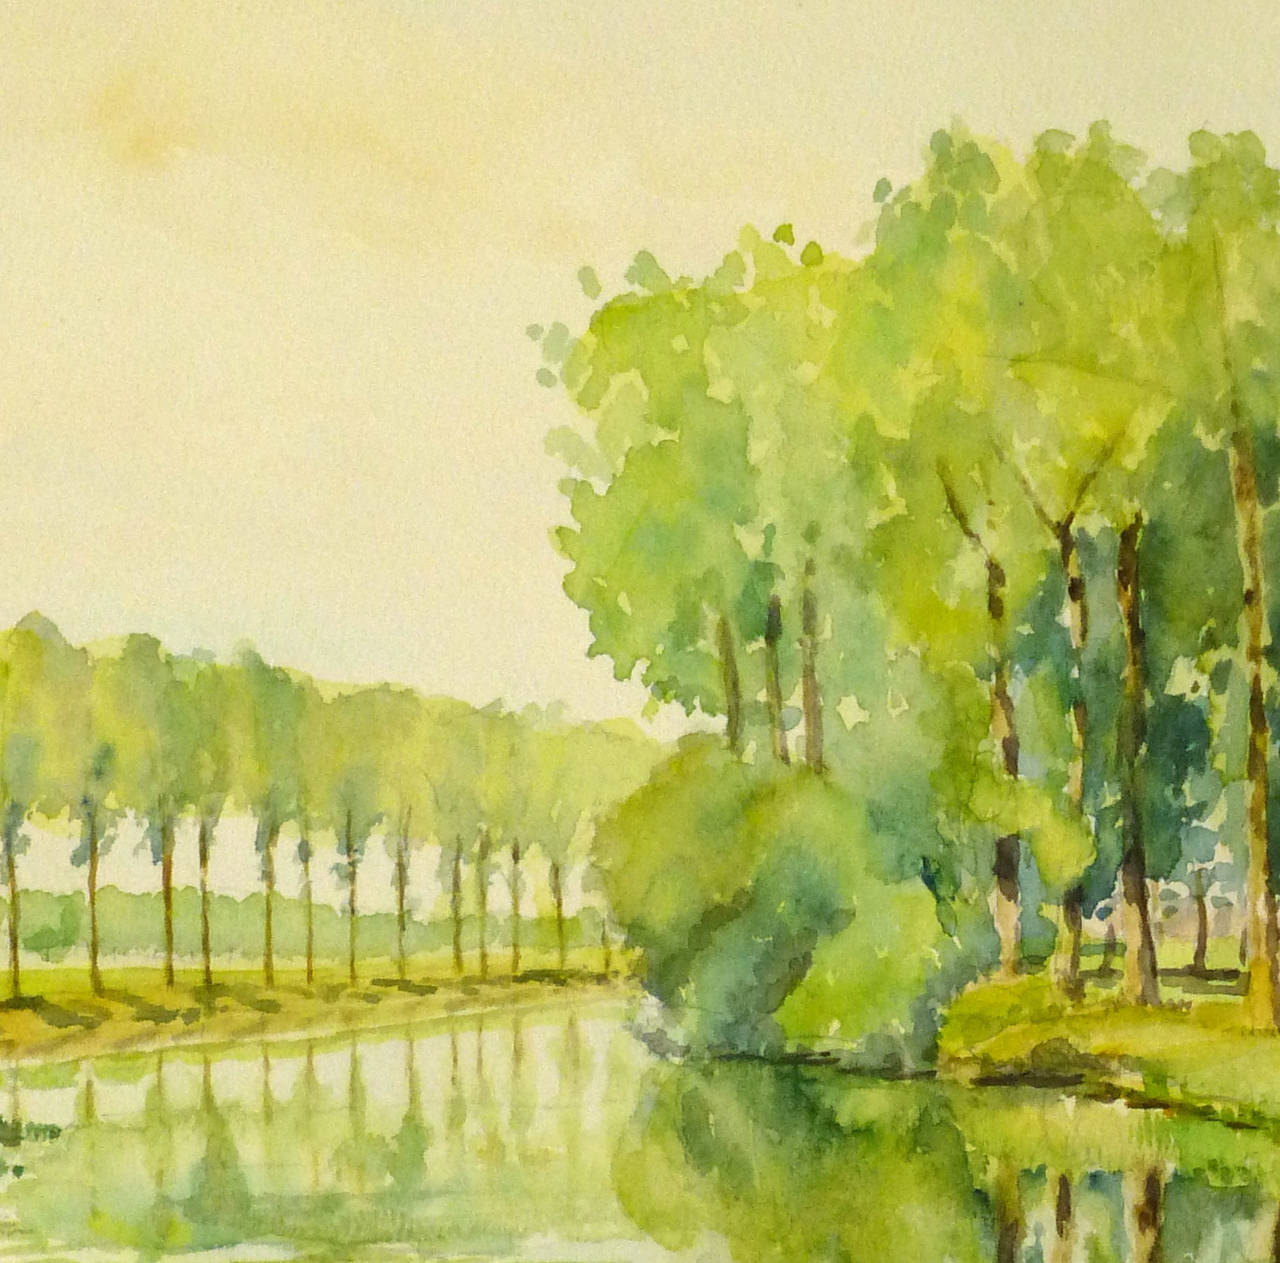 Splendid vintage watercolor painting of glassy pond lined with trees and green foliage in Normandy, France by C. Groux, circa 1930. Unsigned.   Displayed on a white mat with a gold border and fits a standard-size frame. Archival plastic sleeve and